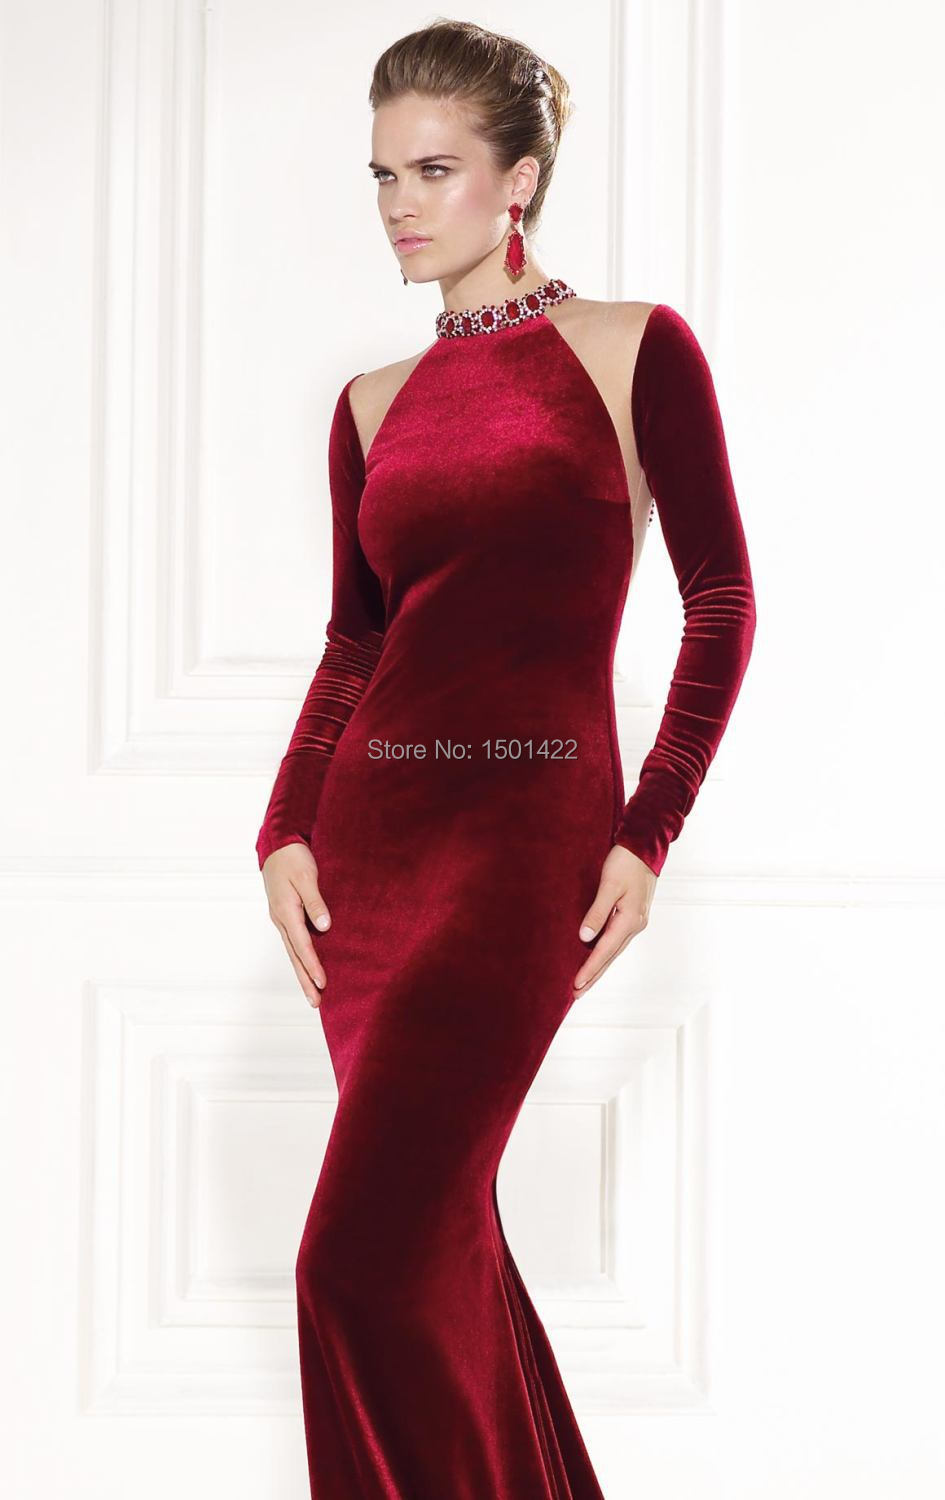 2015 Tarik Ediz Dress Burgundy Evening Gown Sexy Long Sleeve Velvet High  Neck Rhinestone Evening Dresses See Through Back Prom-in Evening Dresses  from ... 296abb5fa77c